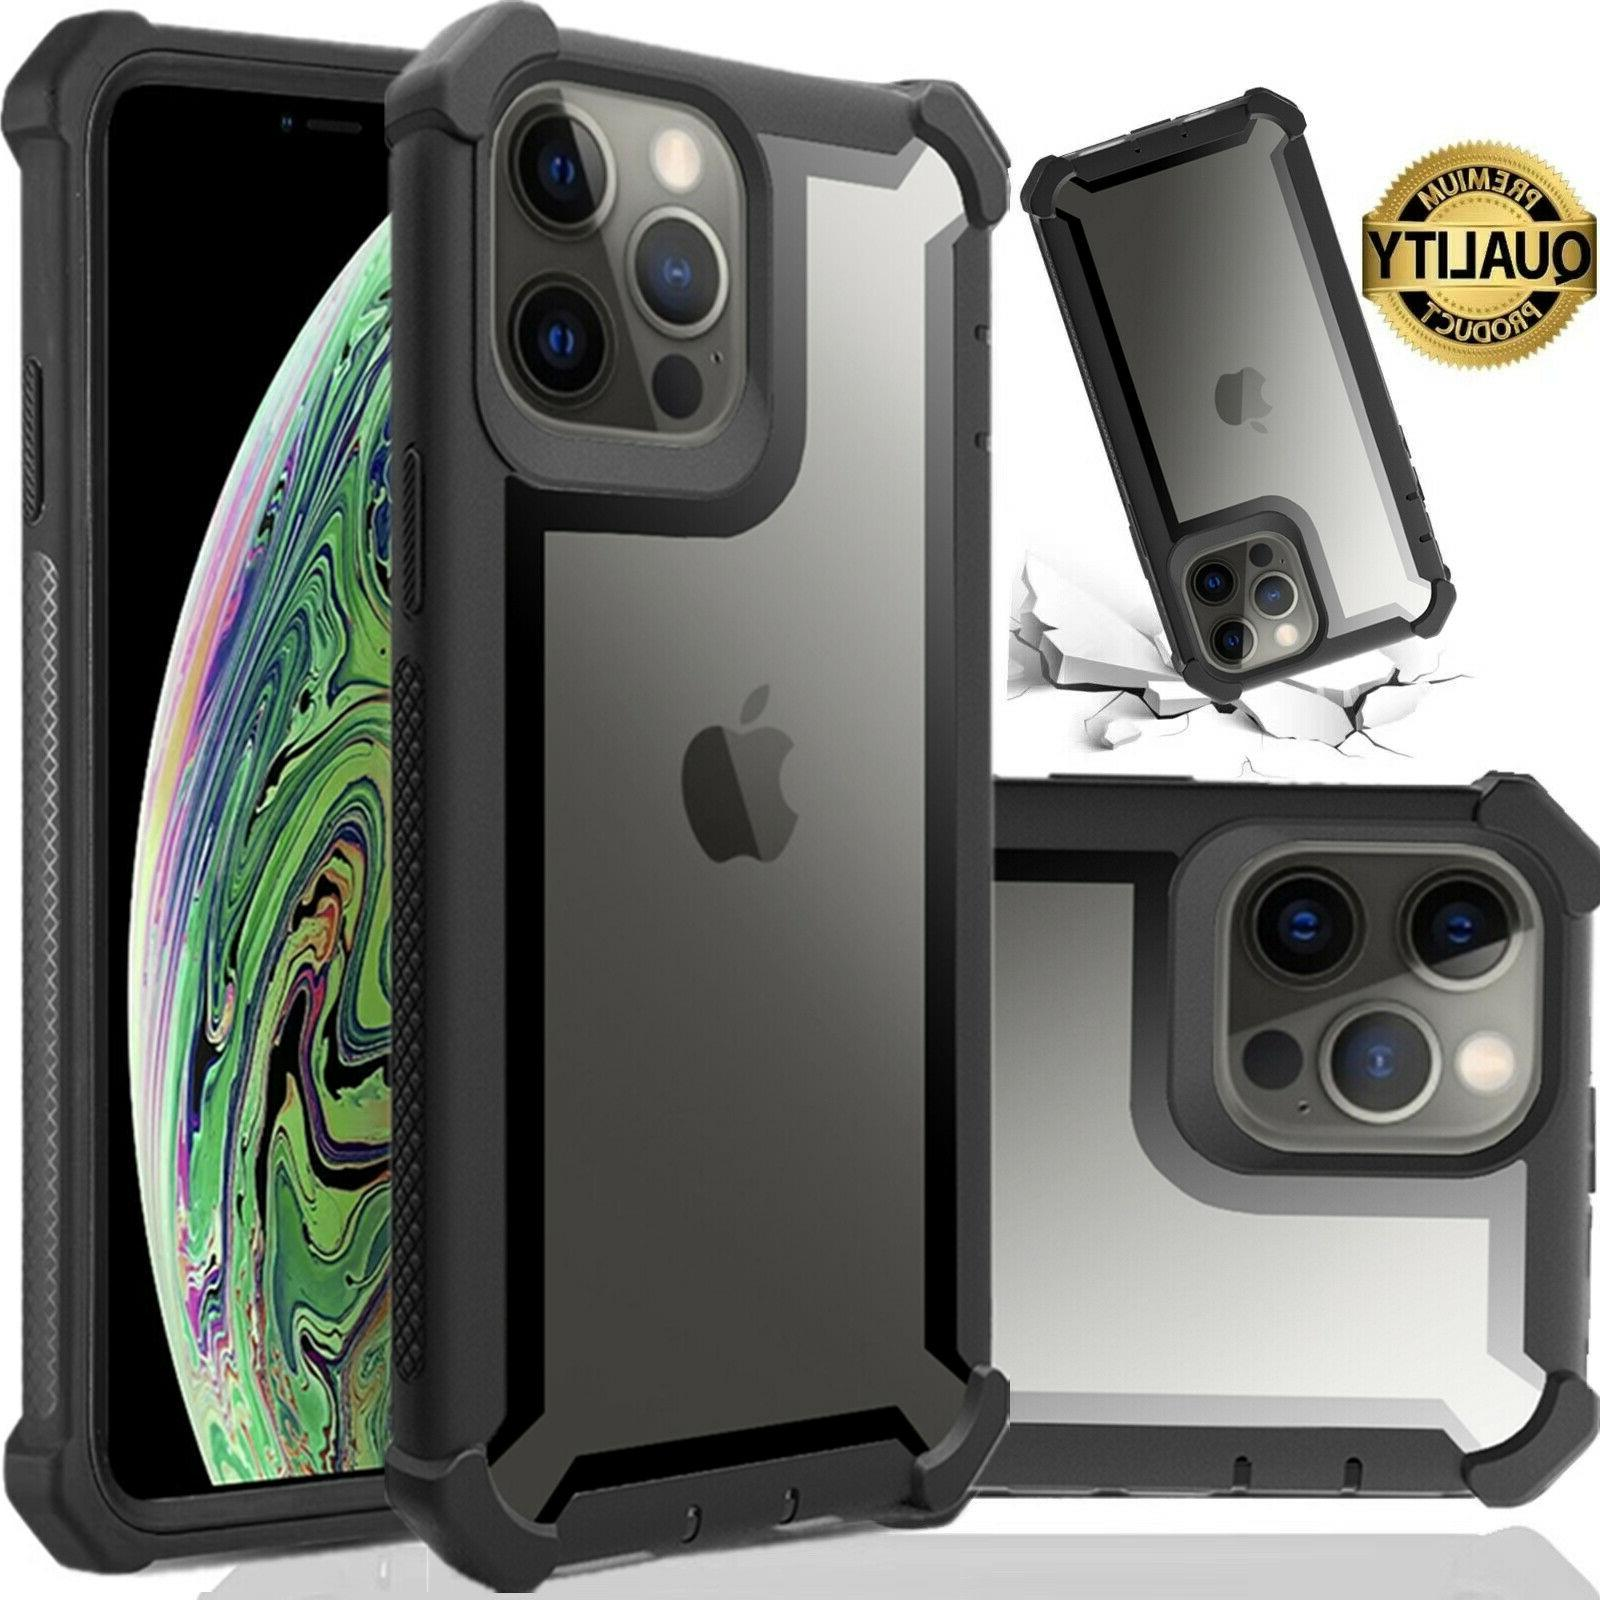 hybrid shockproof heavy duty clear case fits